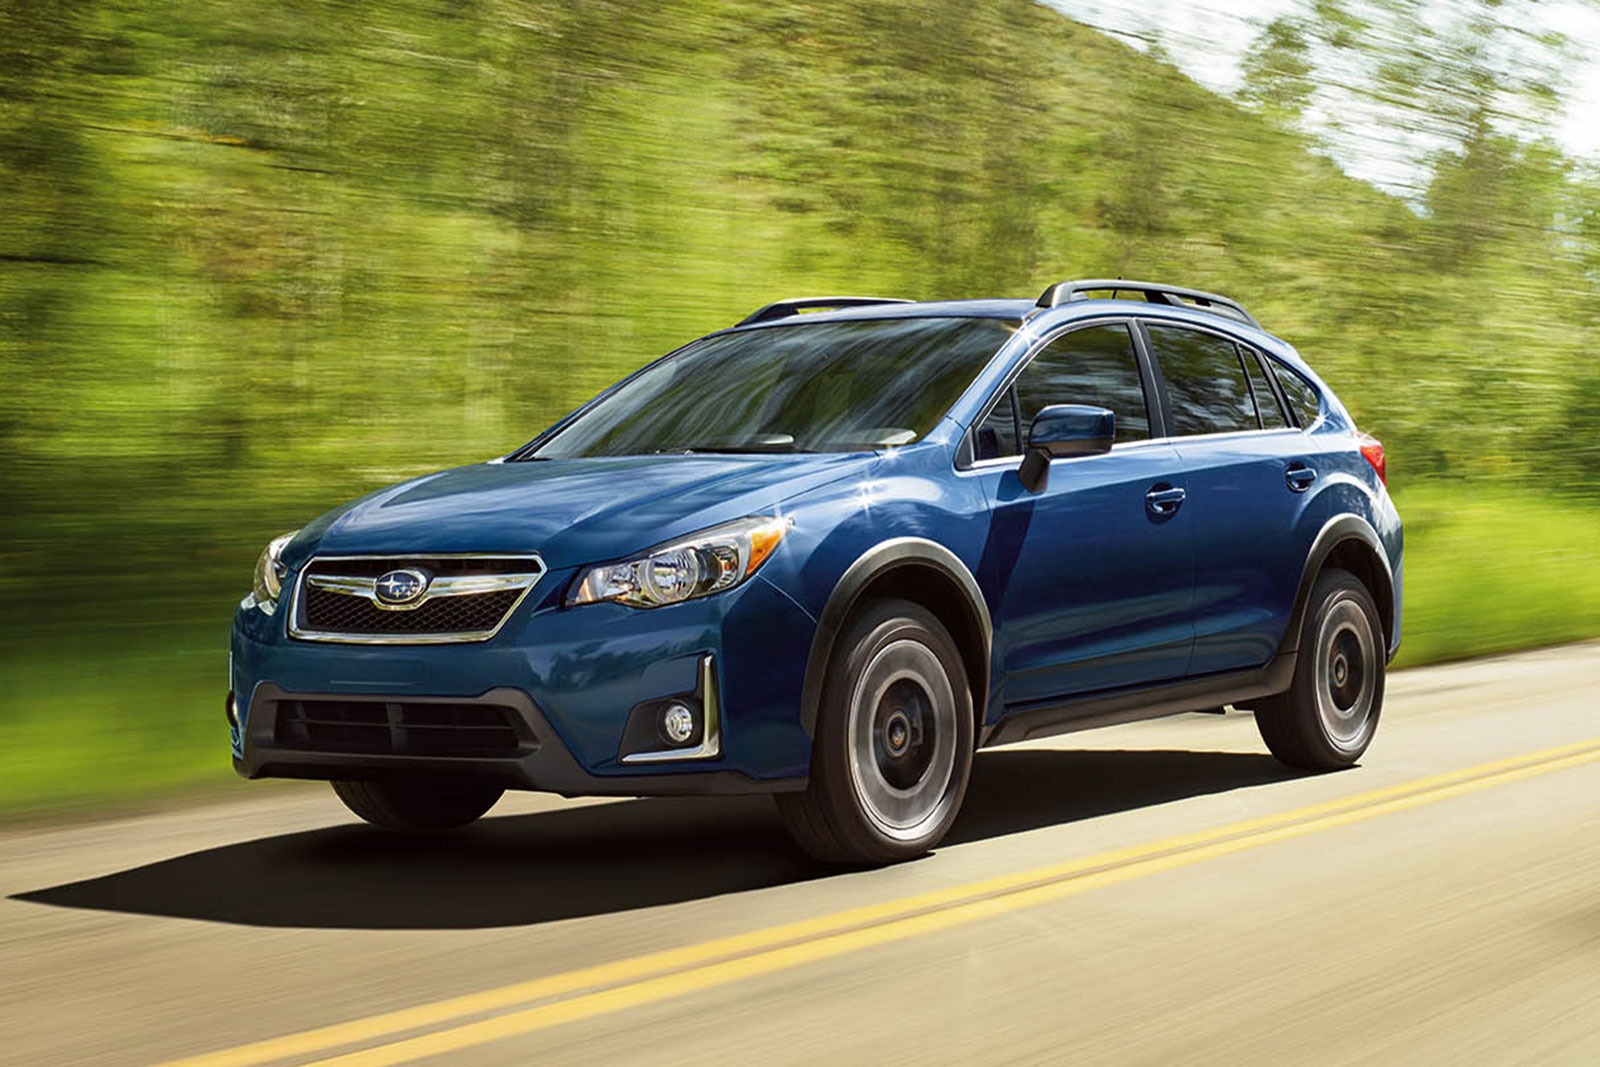 2017 subaru crosstrek hybrid mpg future cars release date. Black Bedroom Furniture Sets. Home Design Ideas